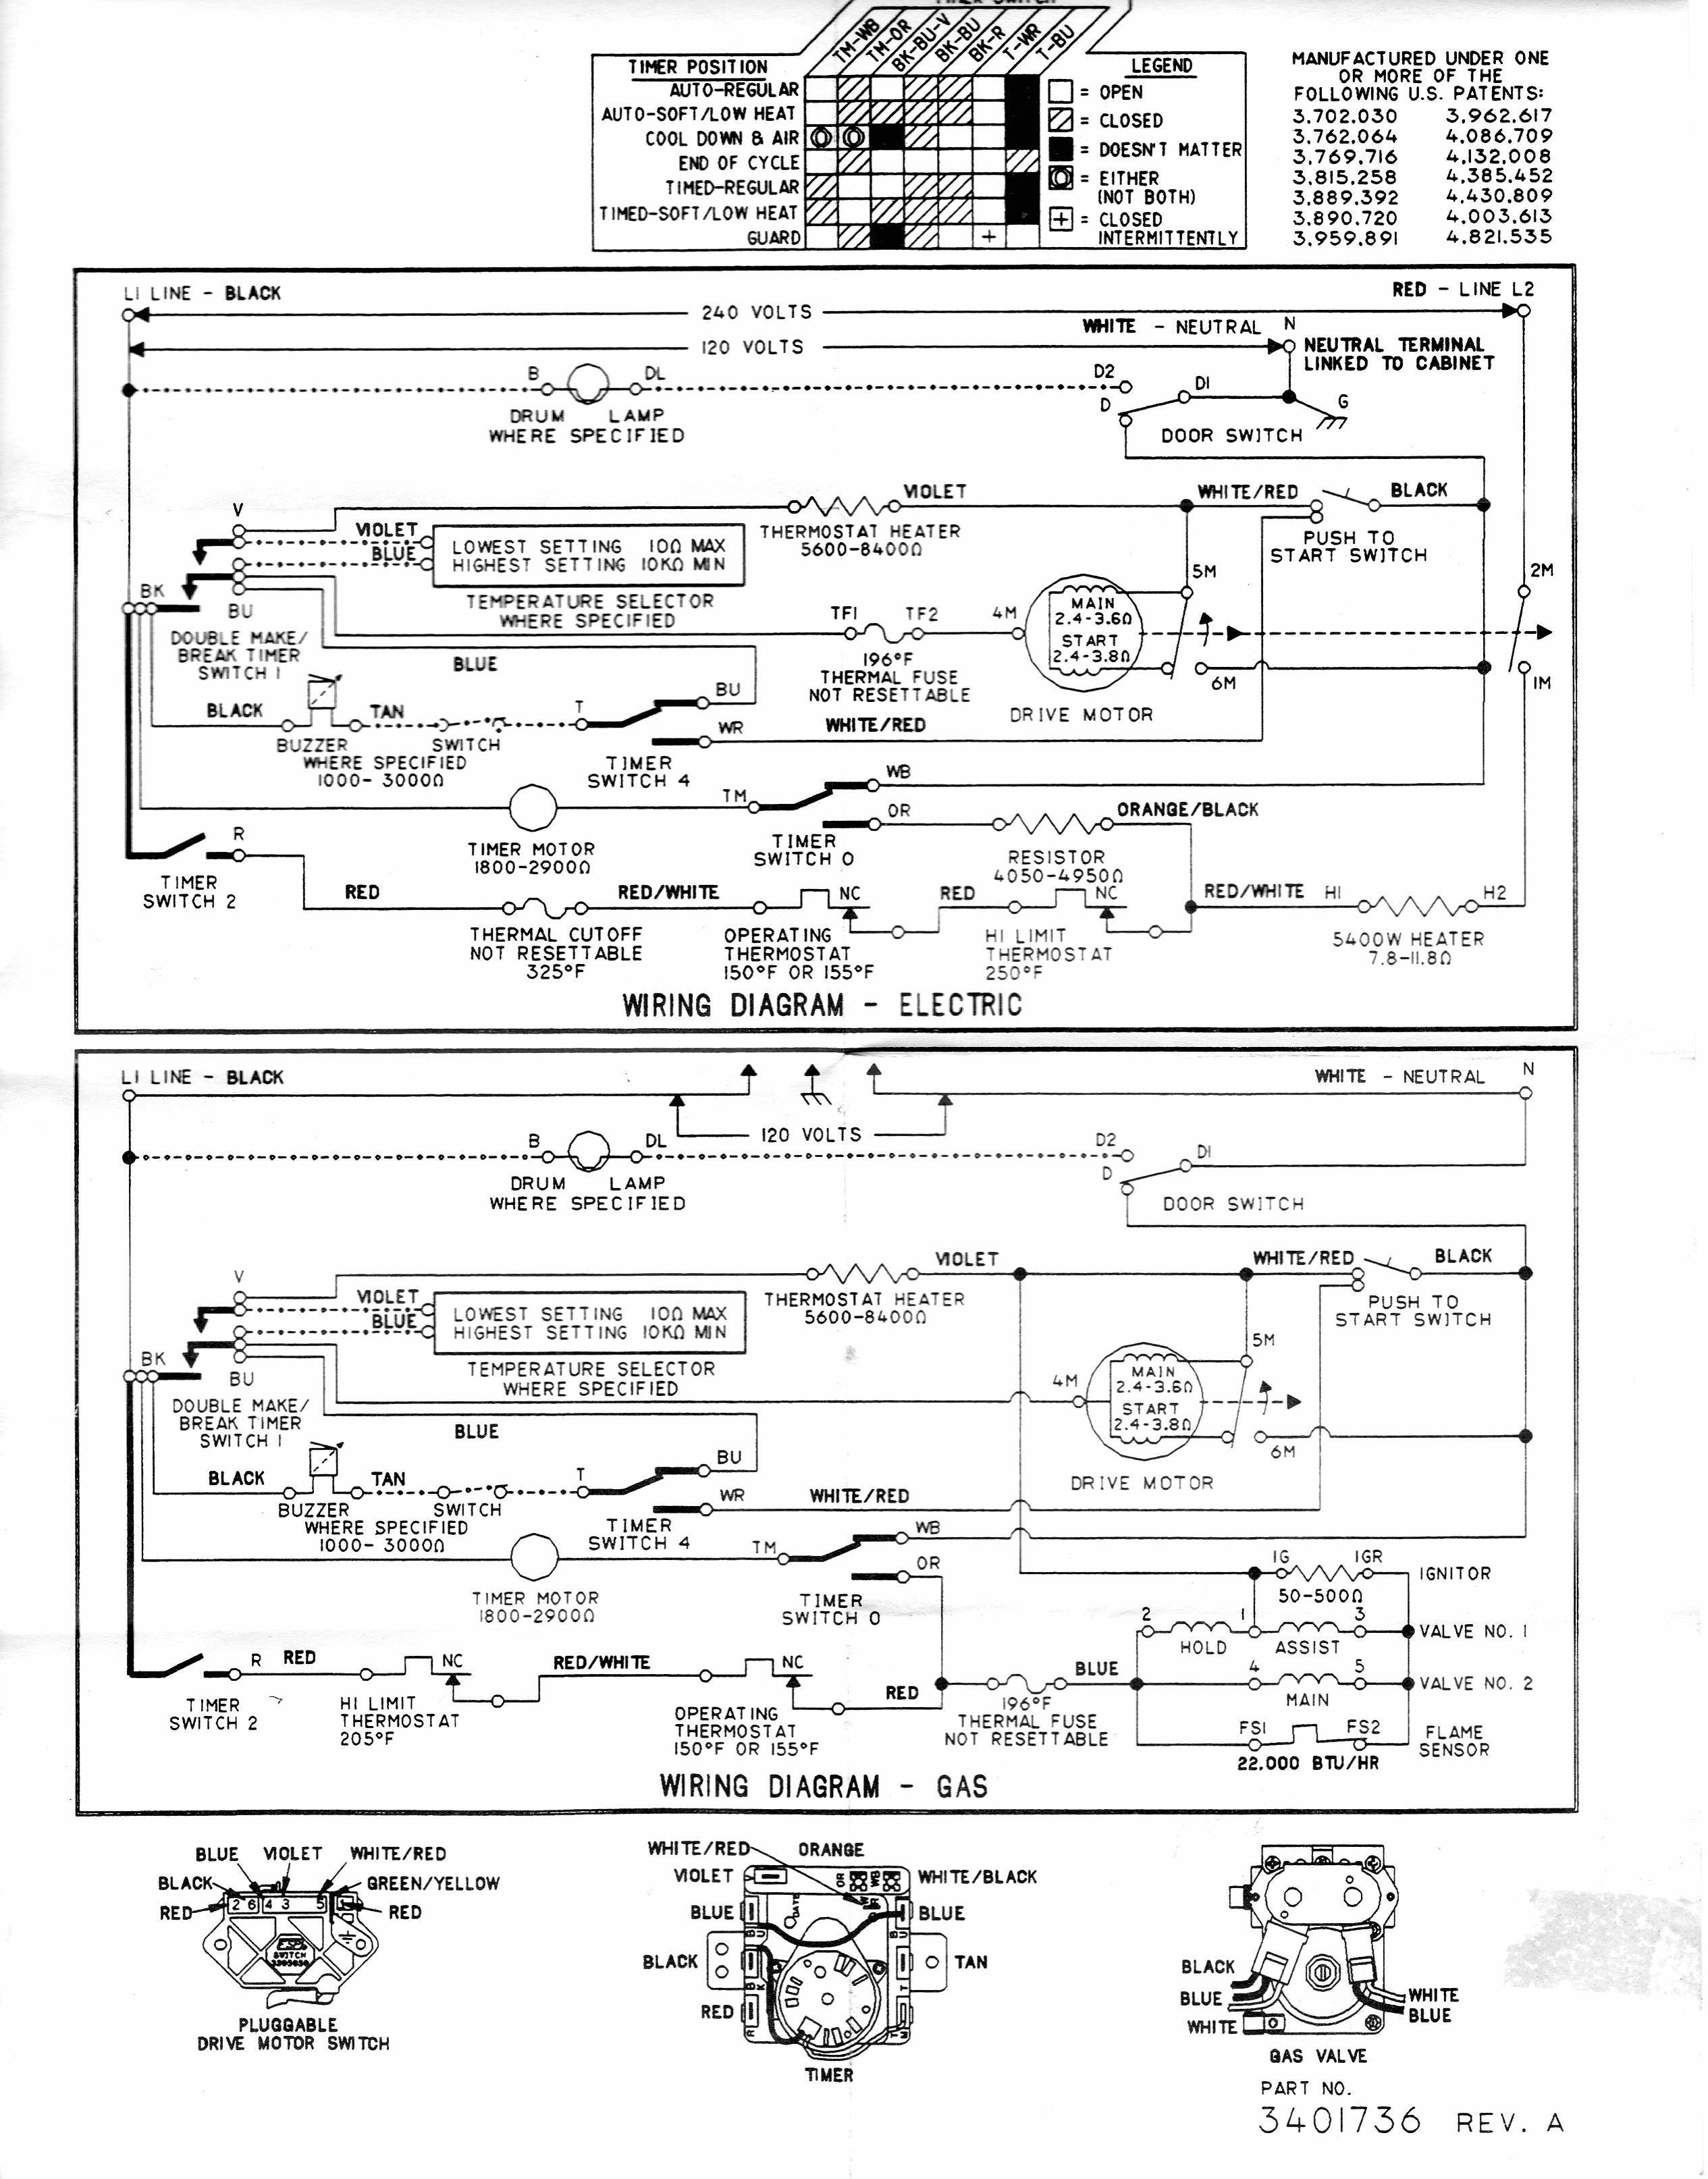 kenmore dryer wiring schematic diagrams kenmore elite dryer heating element wiring diagram download #11